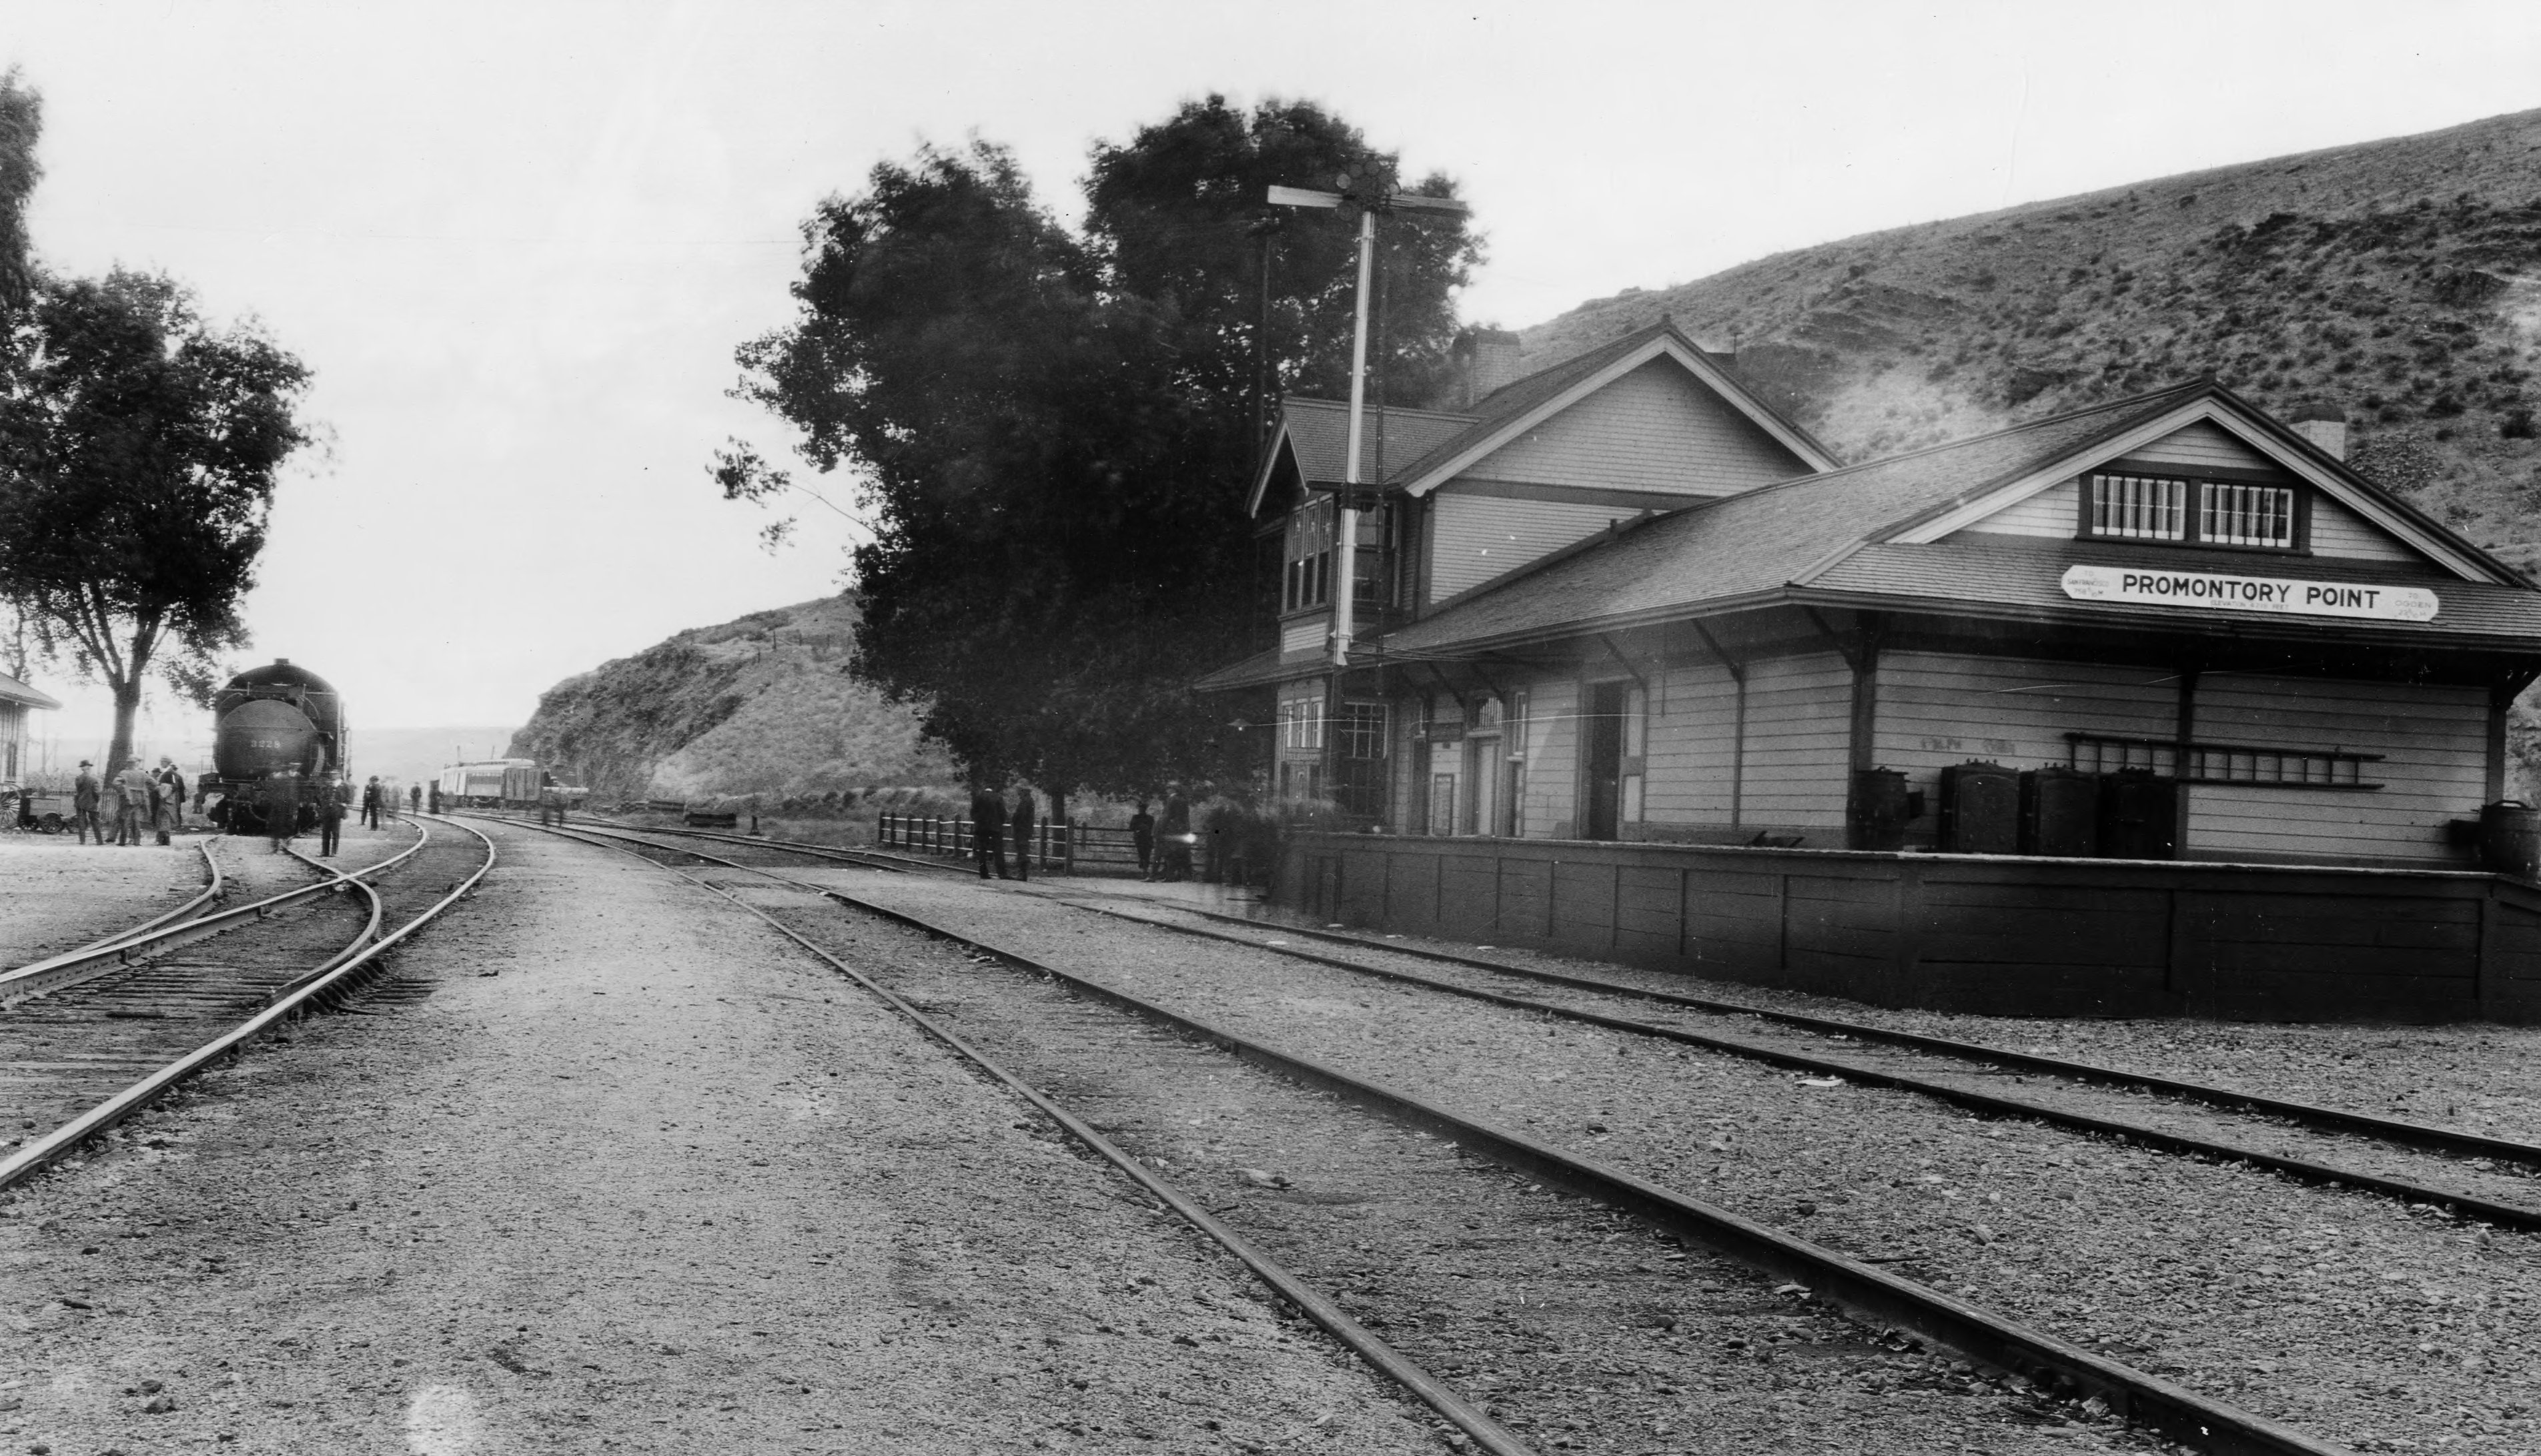 Promontory Point Railroad Station, Southern Pacific, c. 1920.